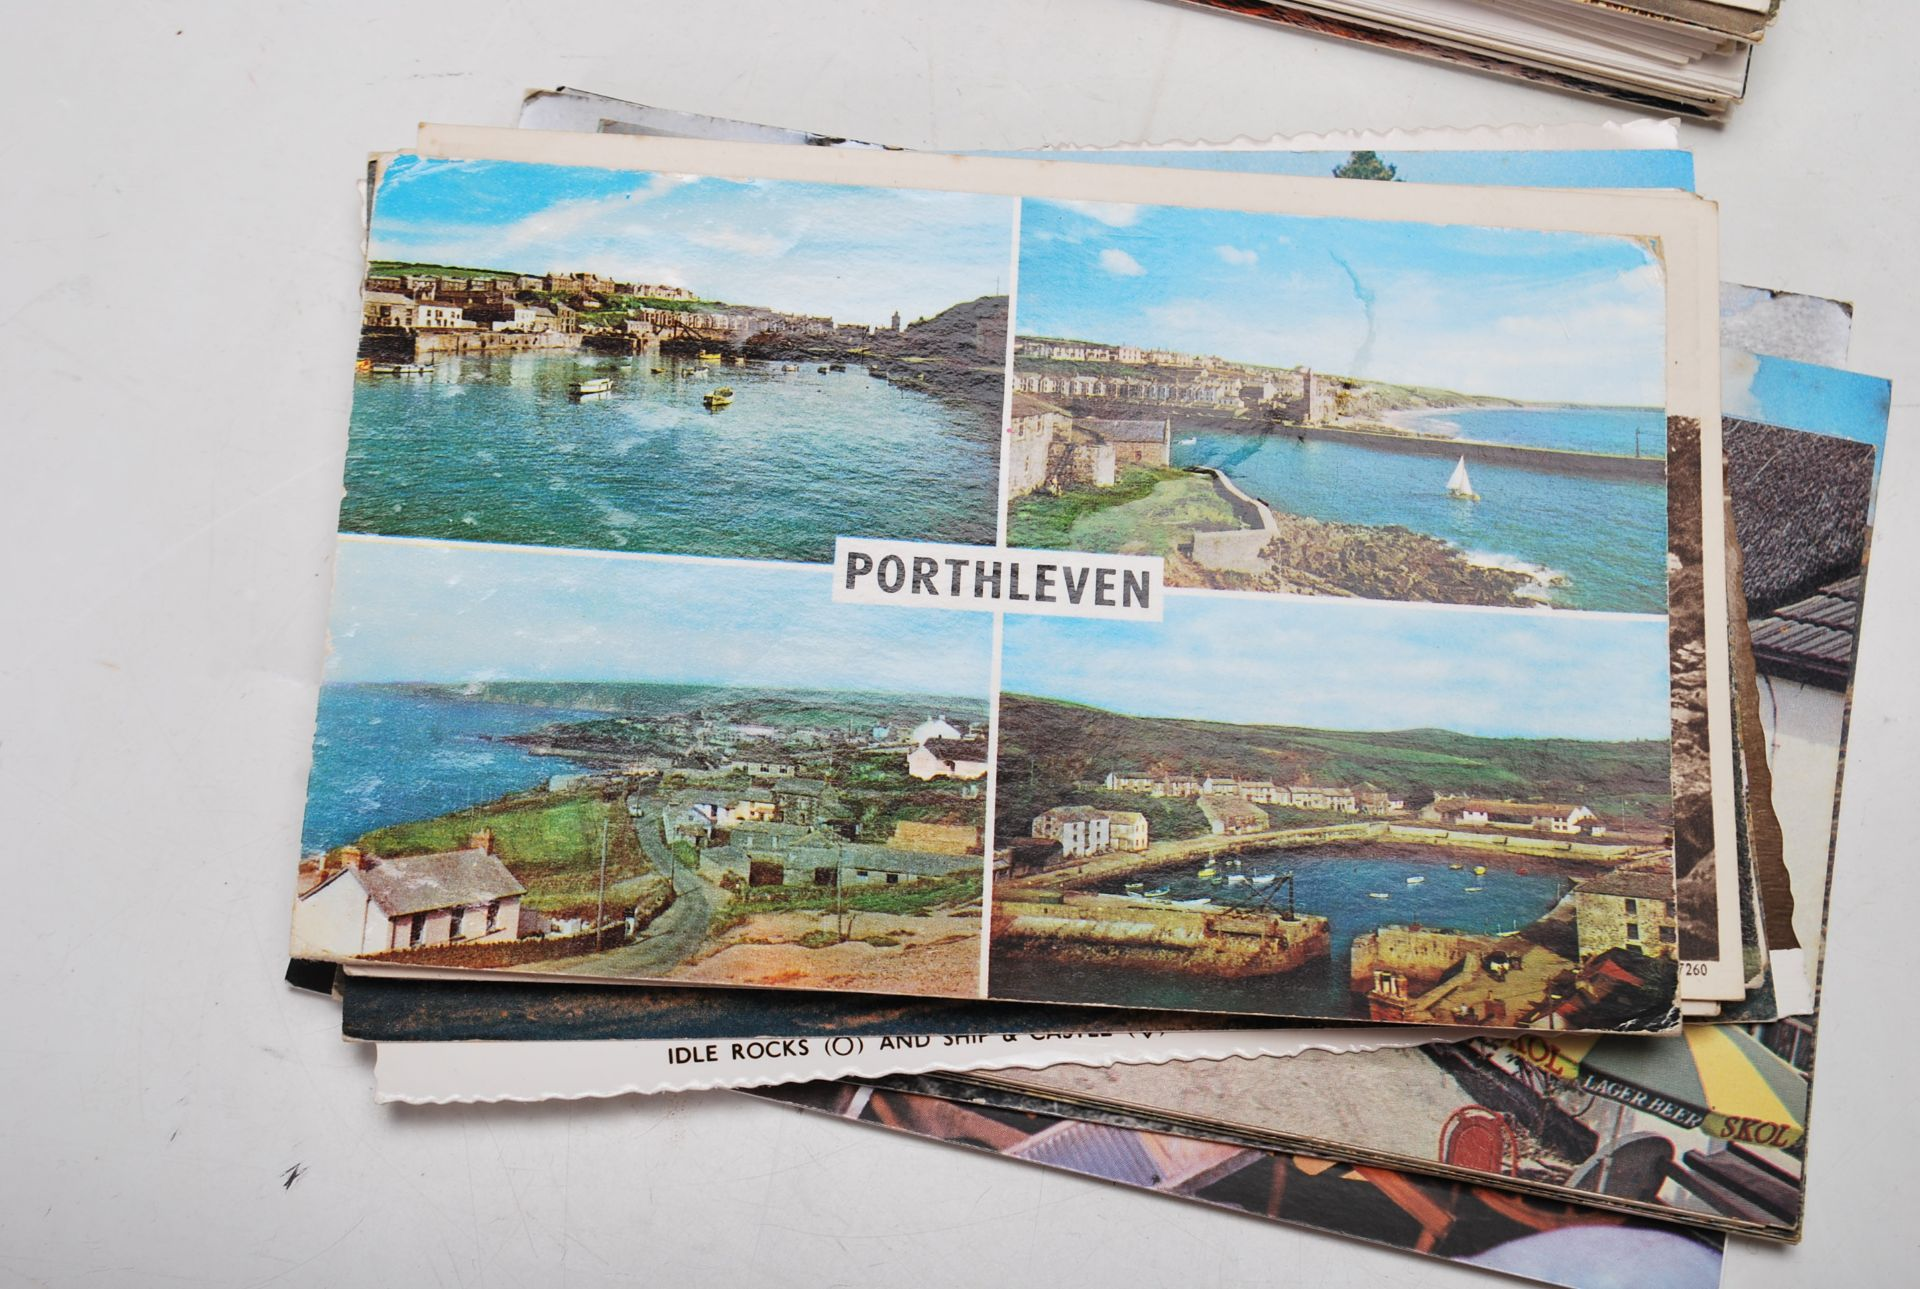 COLLECTION OF VINTAGE POSTCARDS - CORNWALL BRISTOL - Image 6 of 6